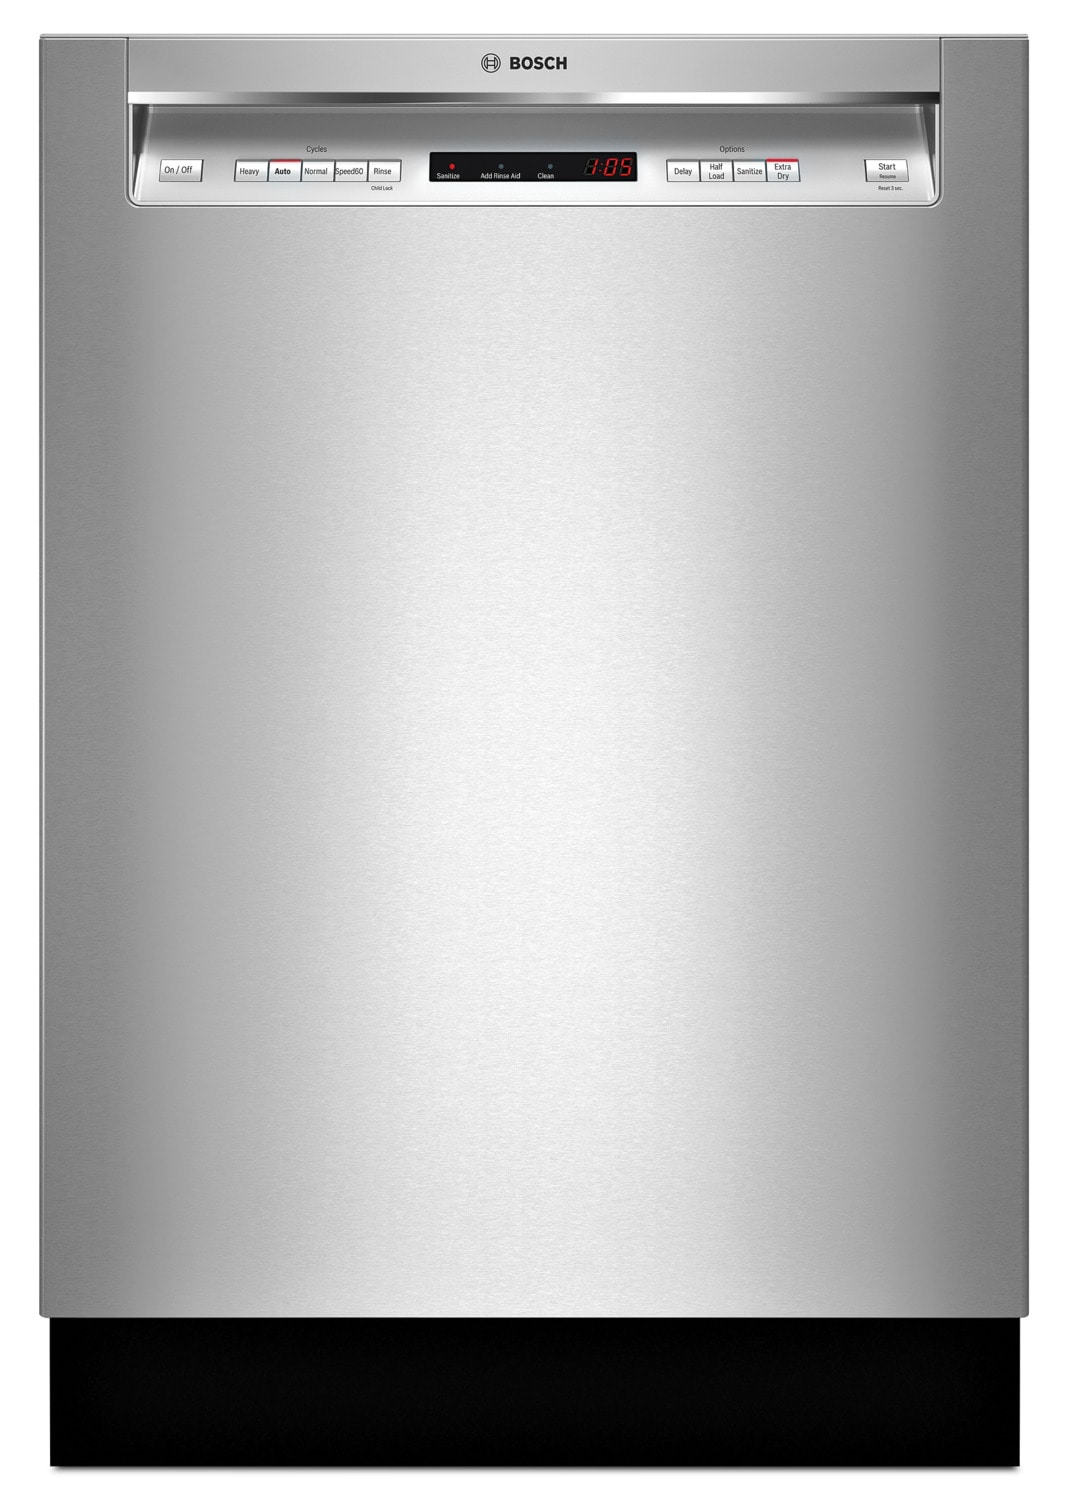 Bosch 300 Series Recessed Handle Built-In Dishwasher – SHEM63W55N